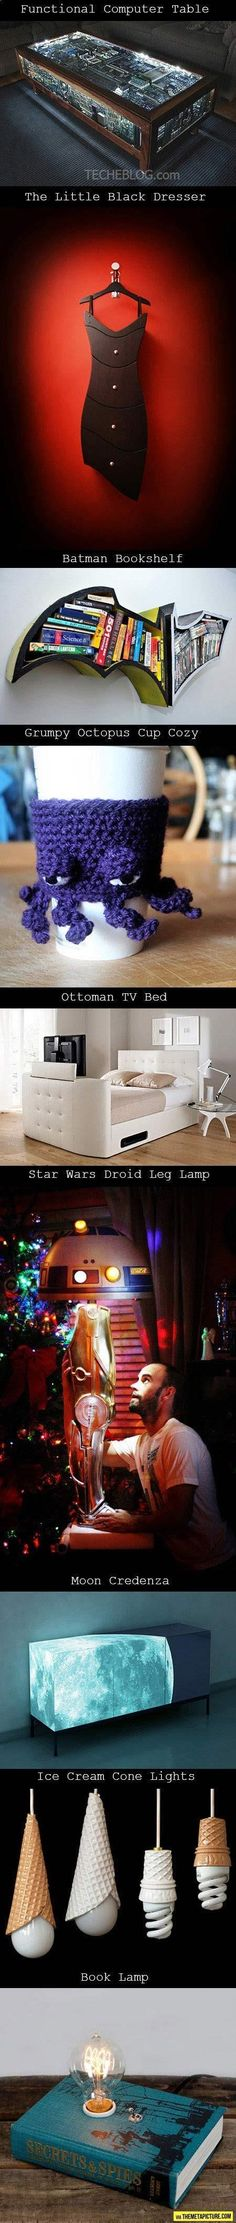 Awesome geek gadgets...